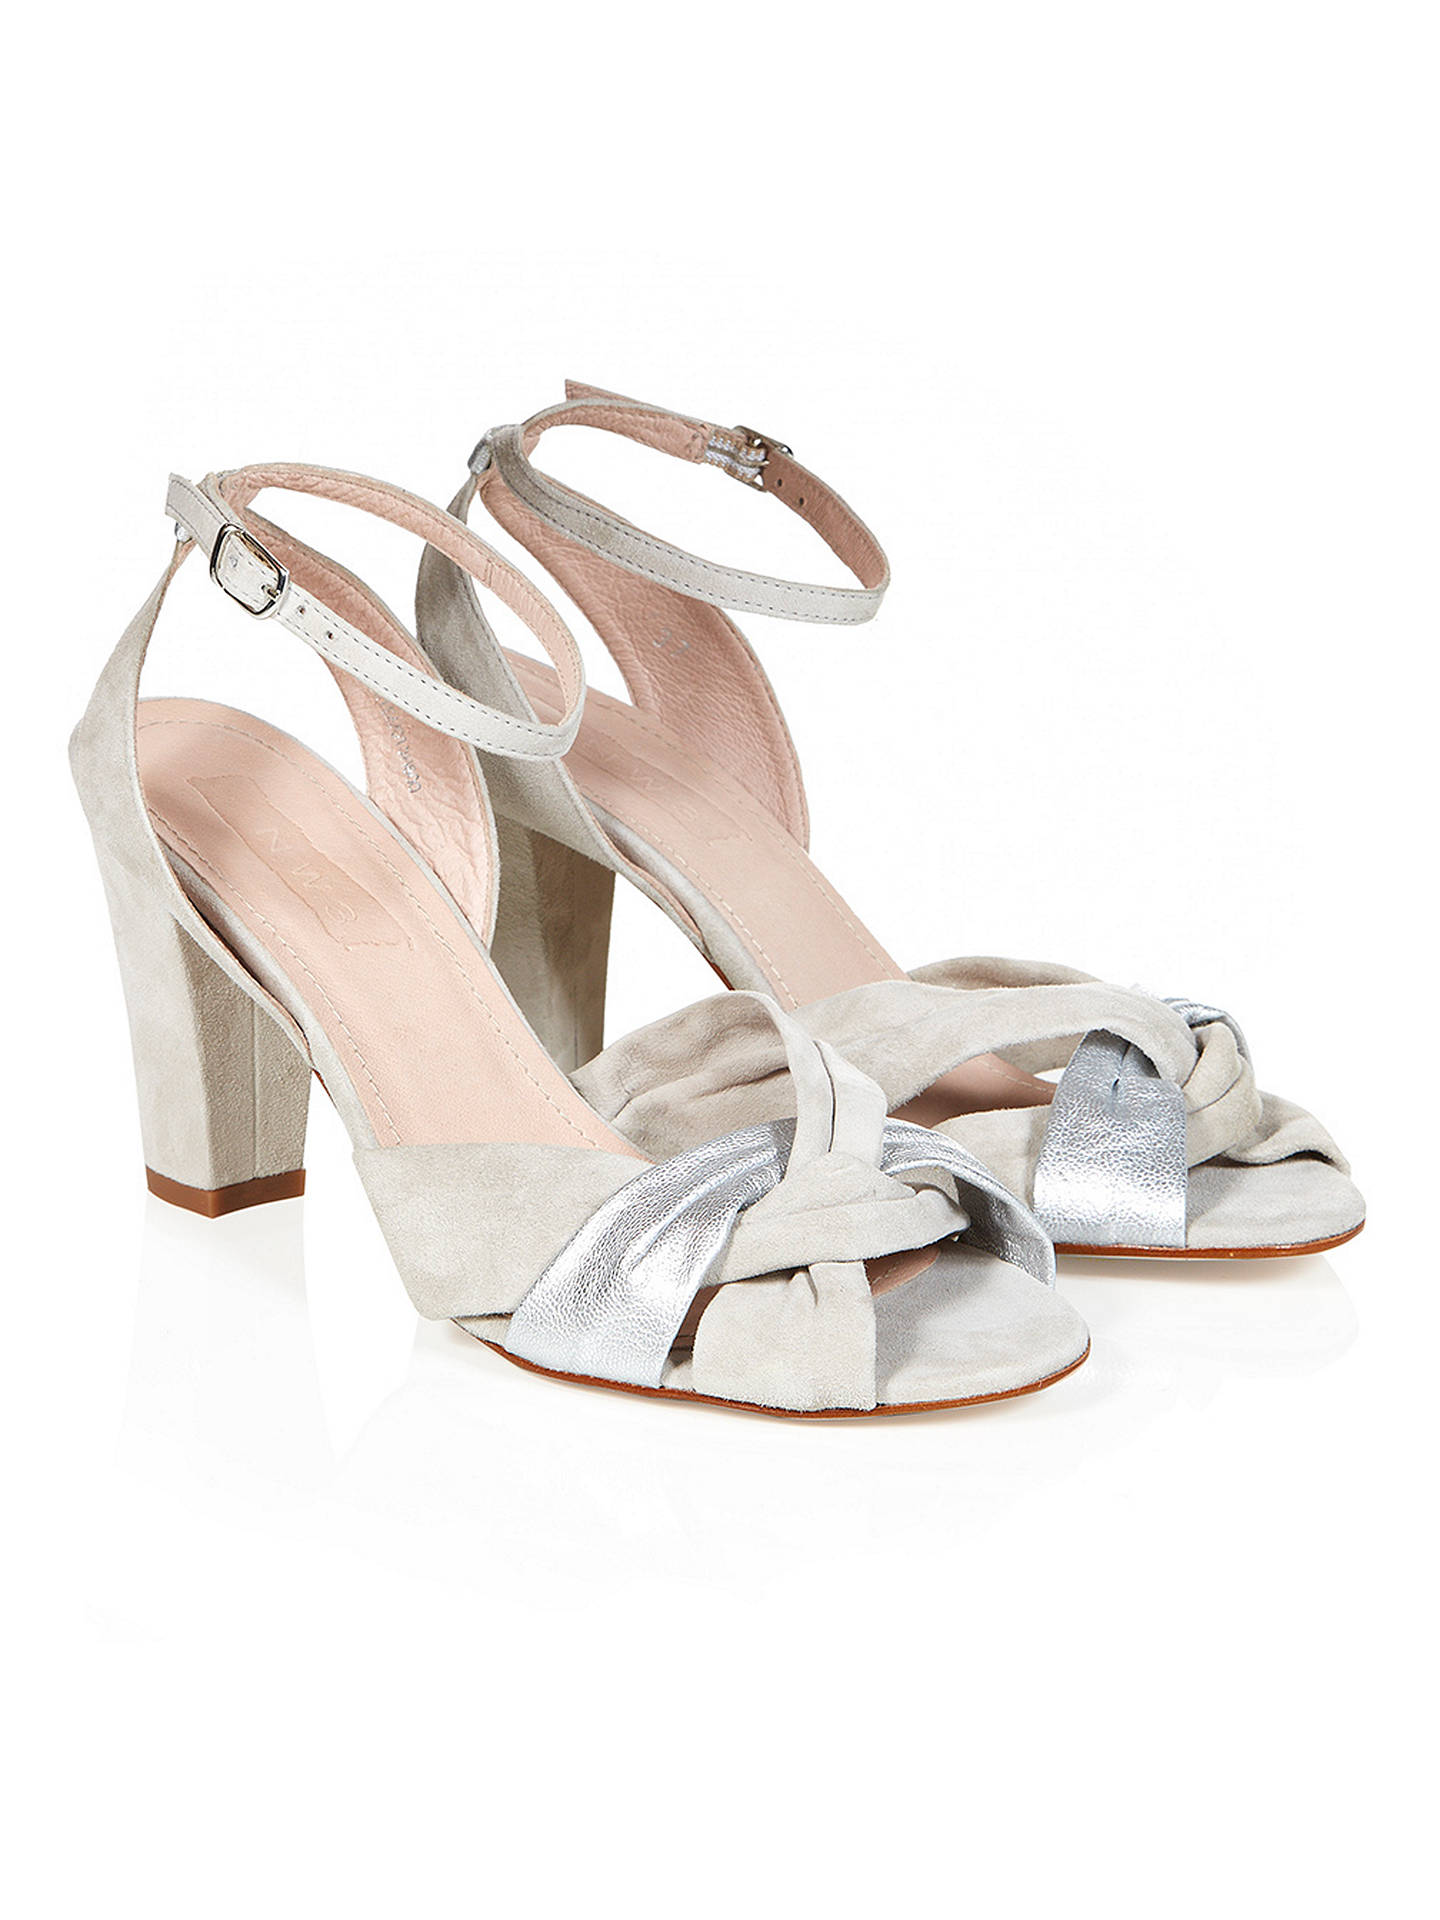 f0fb3d73a5 ... Buy NW3 by Hobbs Fleur Sandals, Grey Silver, 3 Online at johnlewis.com  ...